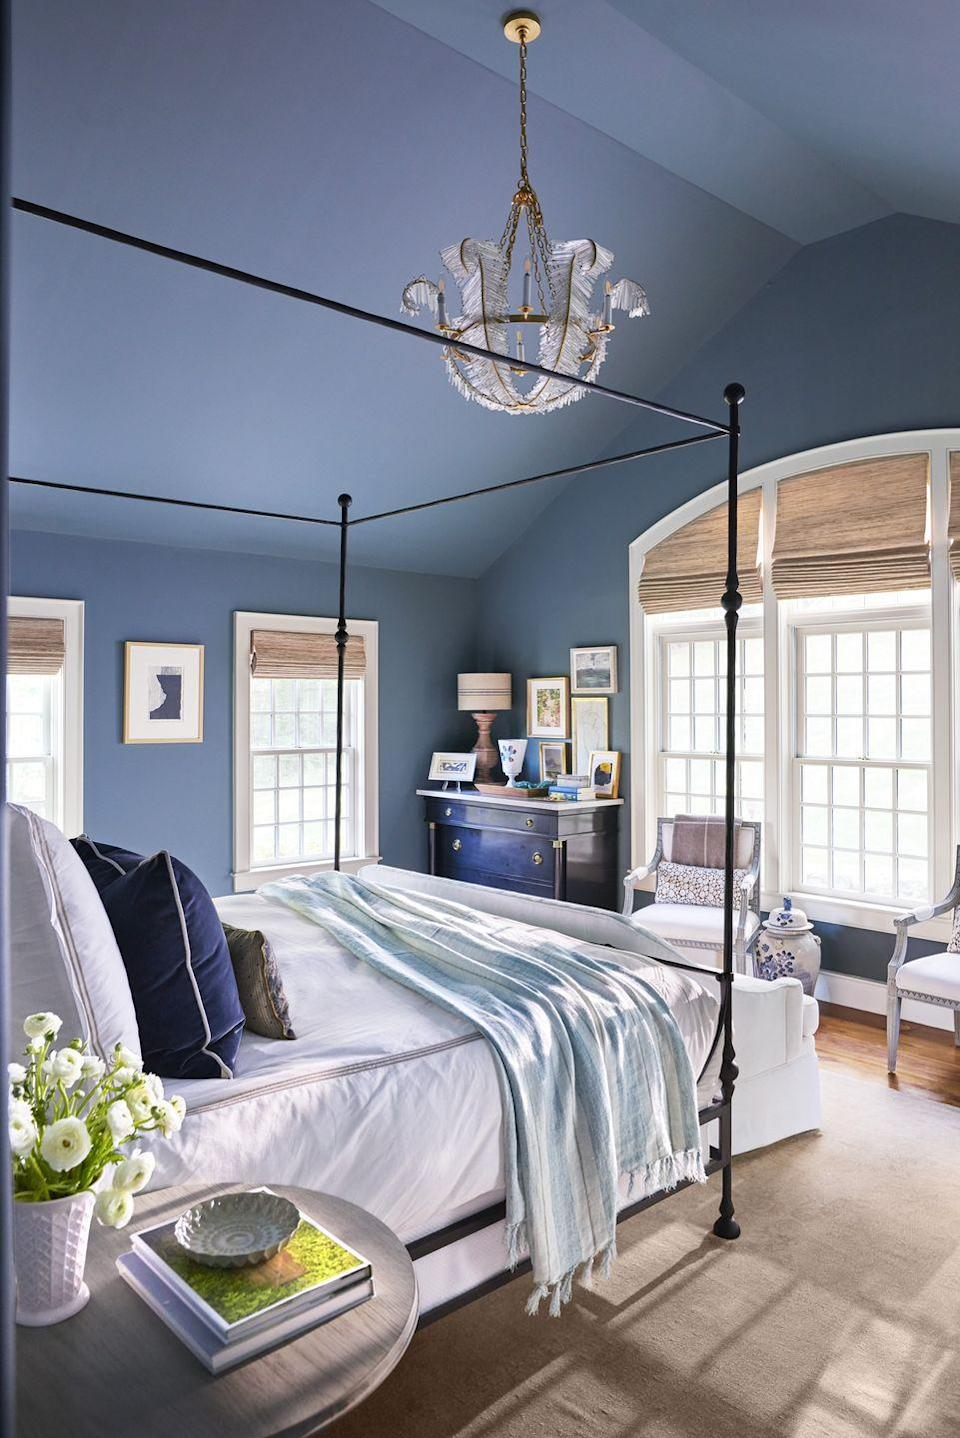 """<p>A moody blue paint color delivers your bedroom a sophisticated and serene look. """"I picked the dark blue based on a paint swatch with fears I might regret it,"""" says homeowner Debbie Propst, president of legendary furniture company Herman Miller, """"but then I read the color was 'inspired by the dramatic Scottish skies."""" Debbie, who is 100% Scottish, felt it was sign. The unexpected choice of painting the ceilings the same color as the walls created a calming cohesiveness of color, rather than a choppy feel that a jarring white ceiling would have brought. It works because of the room's high ceiling height. </p><p><strong>Get the Look: </strong><br>Wall Paint Color: <a href=""""https://go.redirectingat.com?id=74968X1596630&url=https%3A%2F%2Fwww.farrow-ball.com%2Fen-us%2Fpaint-colours%2Finchyra-blue&sref=https%3A%2F%2Fwww.countryliving.com%2Fremodeling-renovation%2Fhome-makeovers%2Fg32468539%2Fbest-bedroom-paint-colors-ideas%2F"""" rel=""""nofollow noopener"""" target=""""_blank"""" data-ylk=""""slk:Inchyra Blue by Farrow & Ball"""" class=""""link rapid-noclick-resp"""">Inchyra Blue by Farrow & Ball<br></a>Window Treatments: <a href=""""https://go.redirectingat.com?id=74968X1596630&url=https%3A%2F%2Fwww.theshadestore.com%2Fshades%2Fwoven-wood-shades&sref=https%3A%2F%2Fwww.countryliving.com%2Fremodeling-renovation%2Fhome-makeovers%2Fg32468539%2Fbest-bedroom-paint-colors-ideas%2F"""" rel=""""nofollow noopener"""" target=""""_blank"""" data-ylk=""""slk:Woven Wood Shades; theshadestore.com"""" class=""""link rapid-noclick-resp"""">Woven Wood Shades; theshadestore.com</a></p>"""